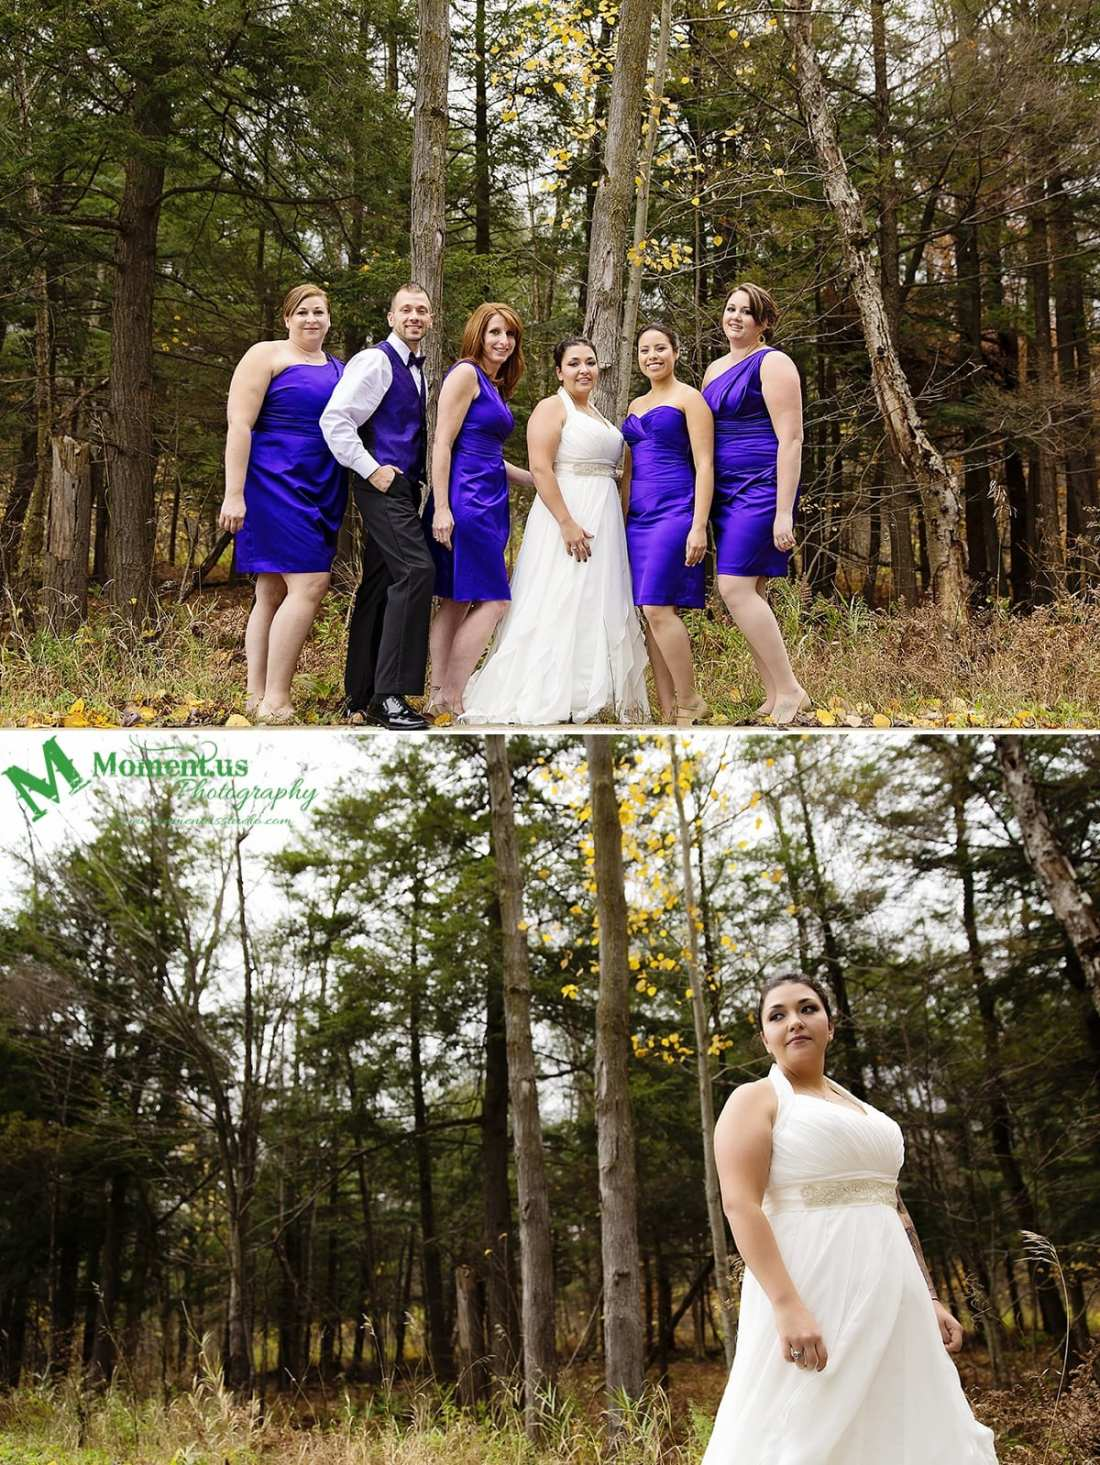 Alexandria wedding - bridal party in purple by trees